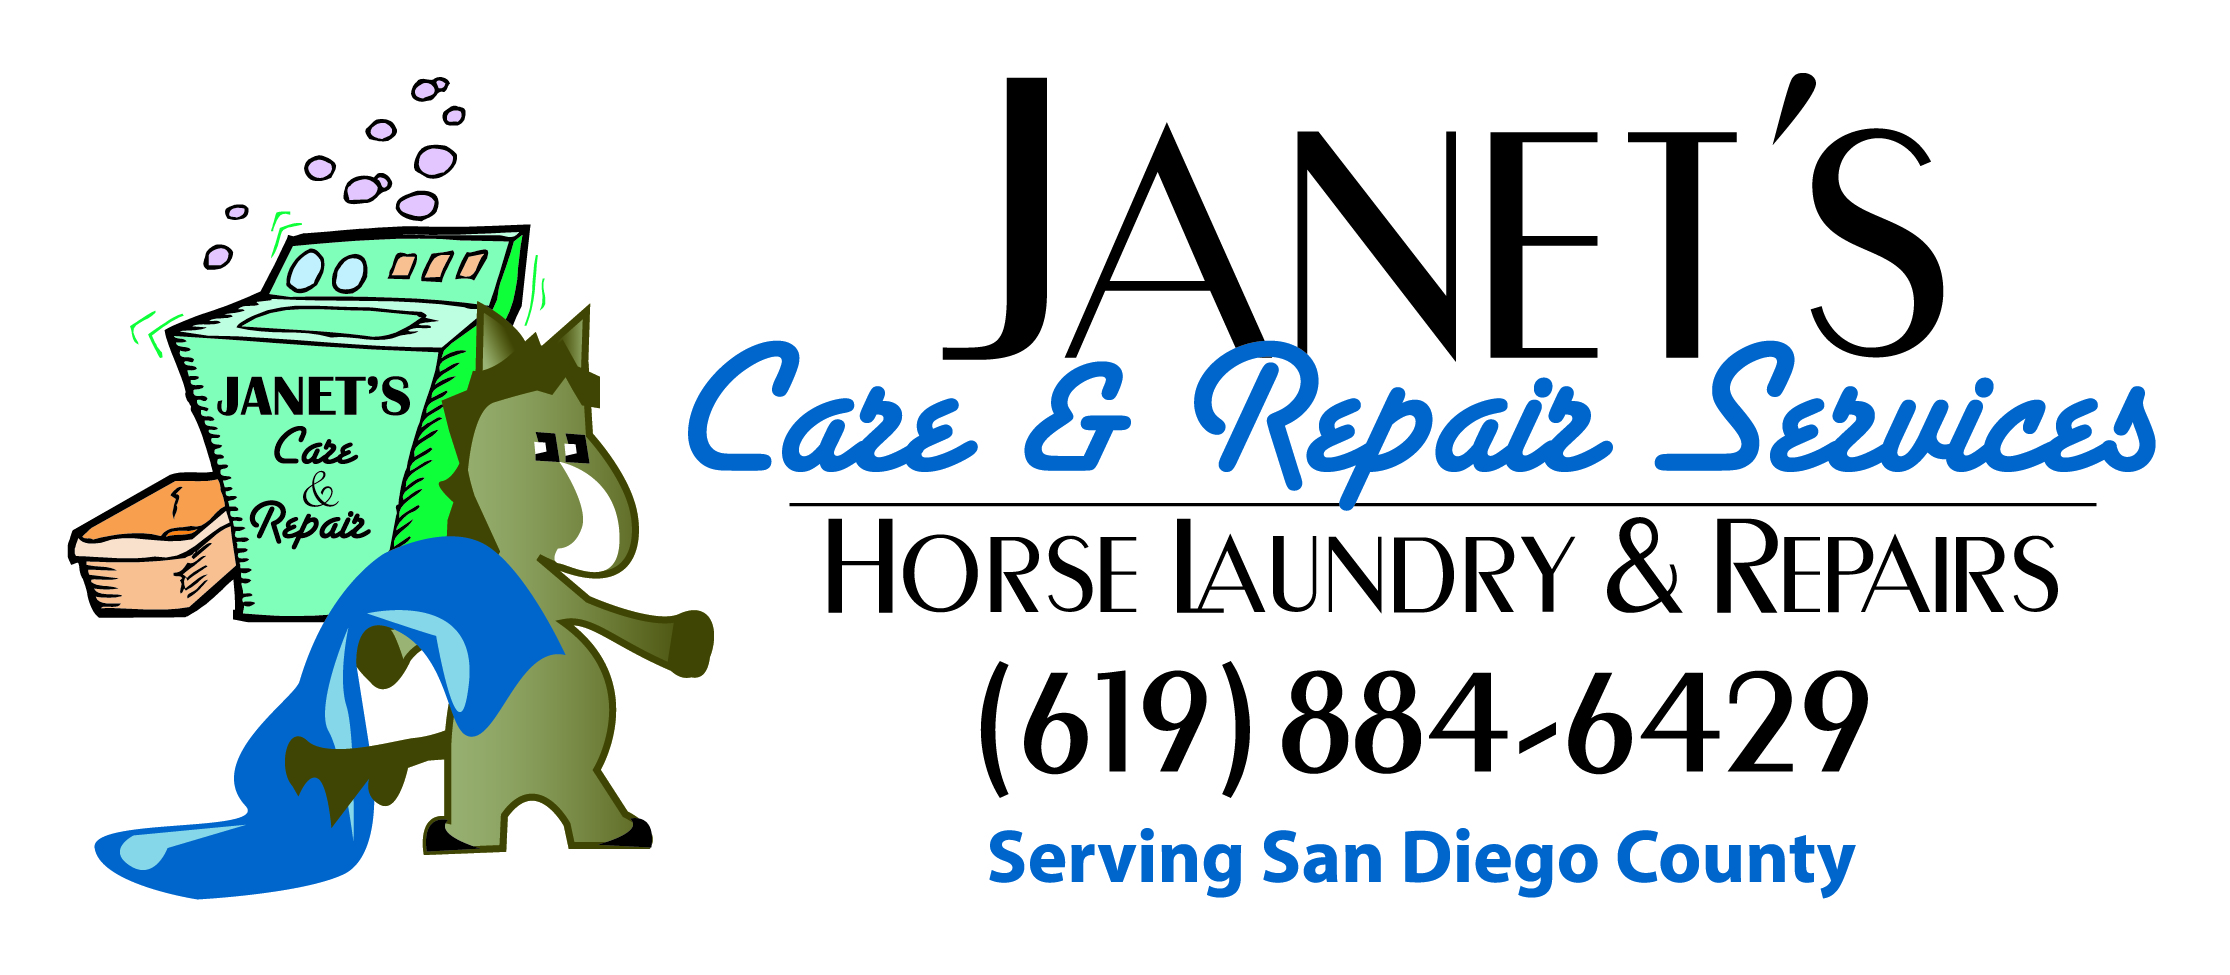 Janet's care and repair